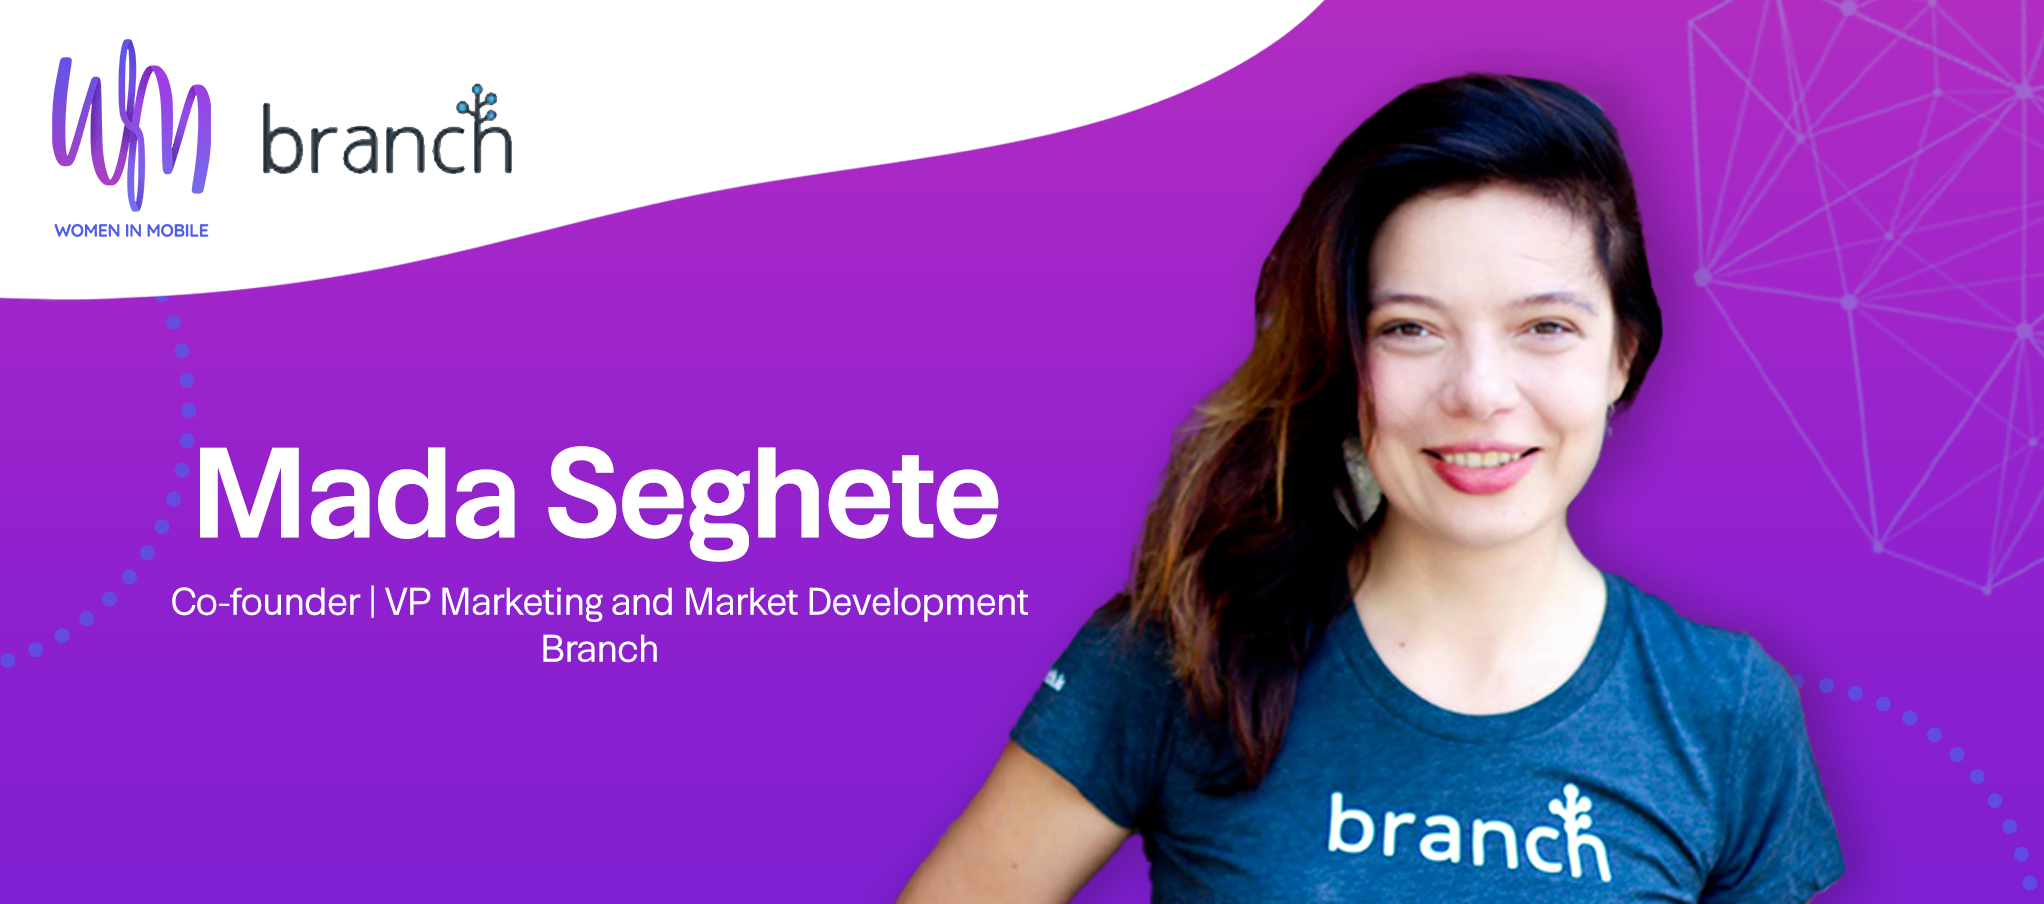 Mada Seghete, Co-founder | VP Marketing and Market Development at Branch, at Aarki's Women in Mobile Series